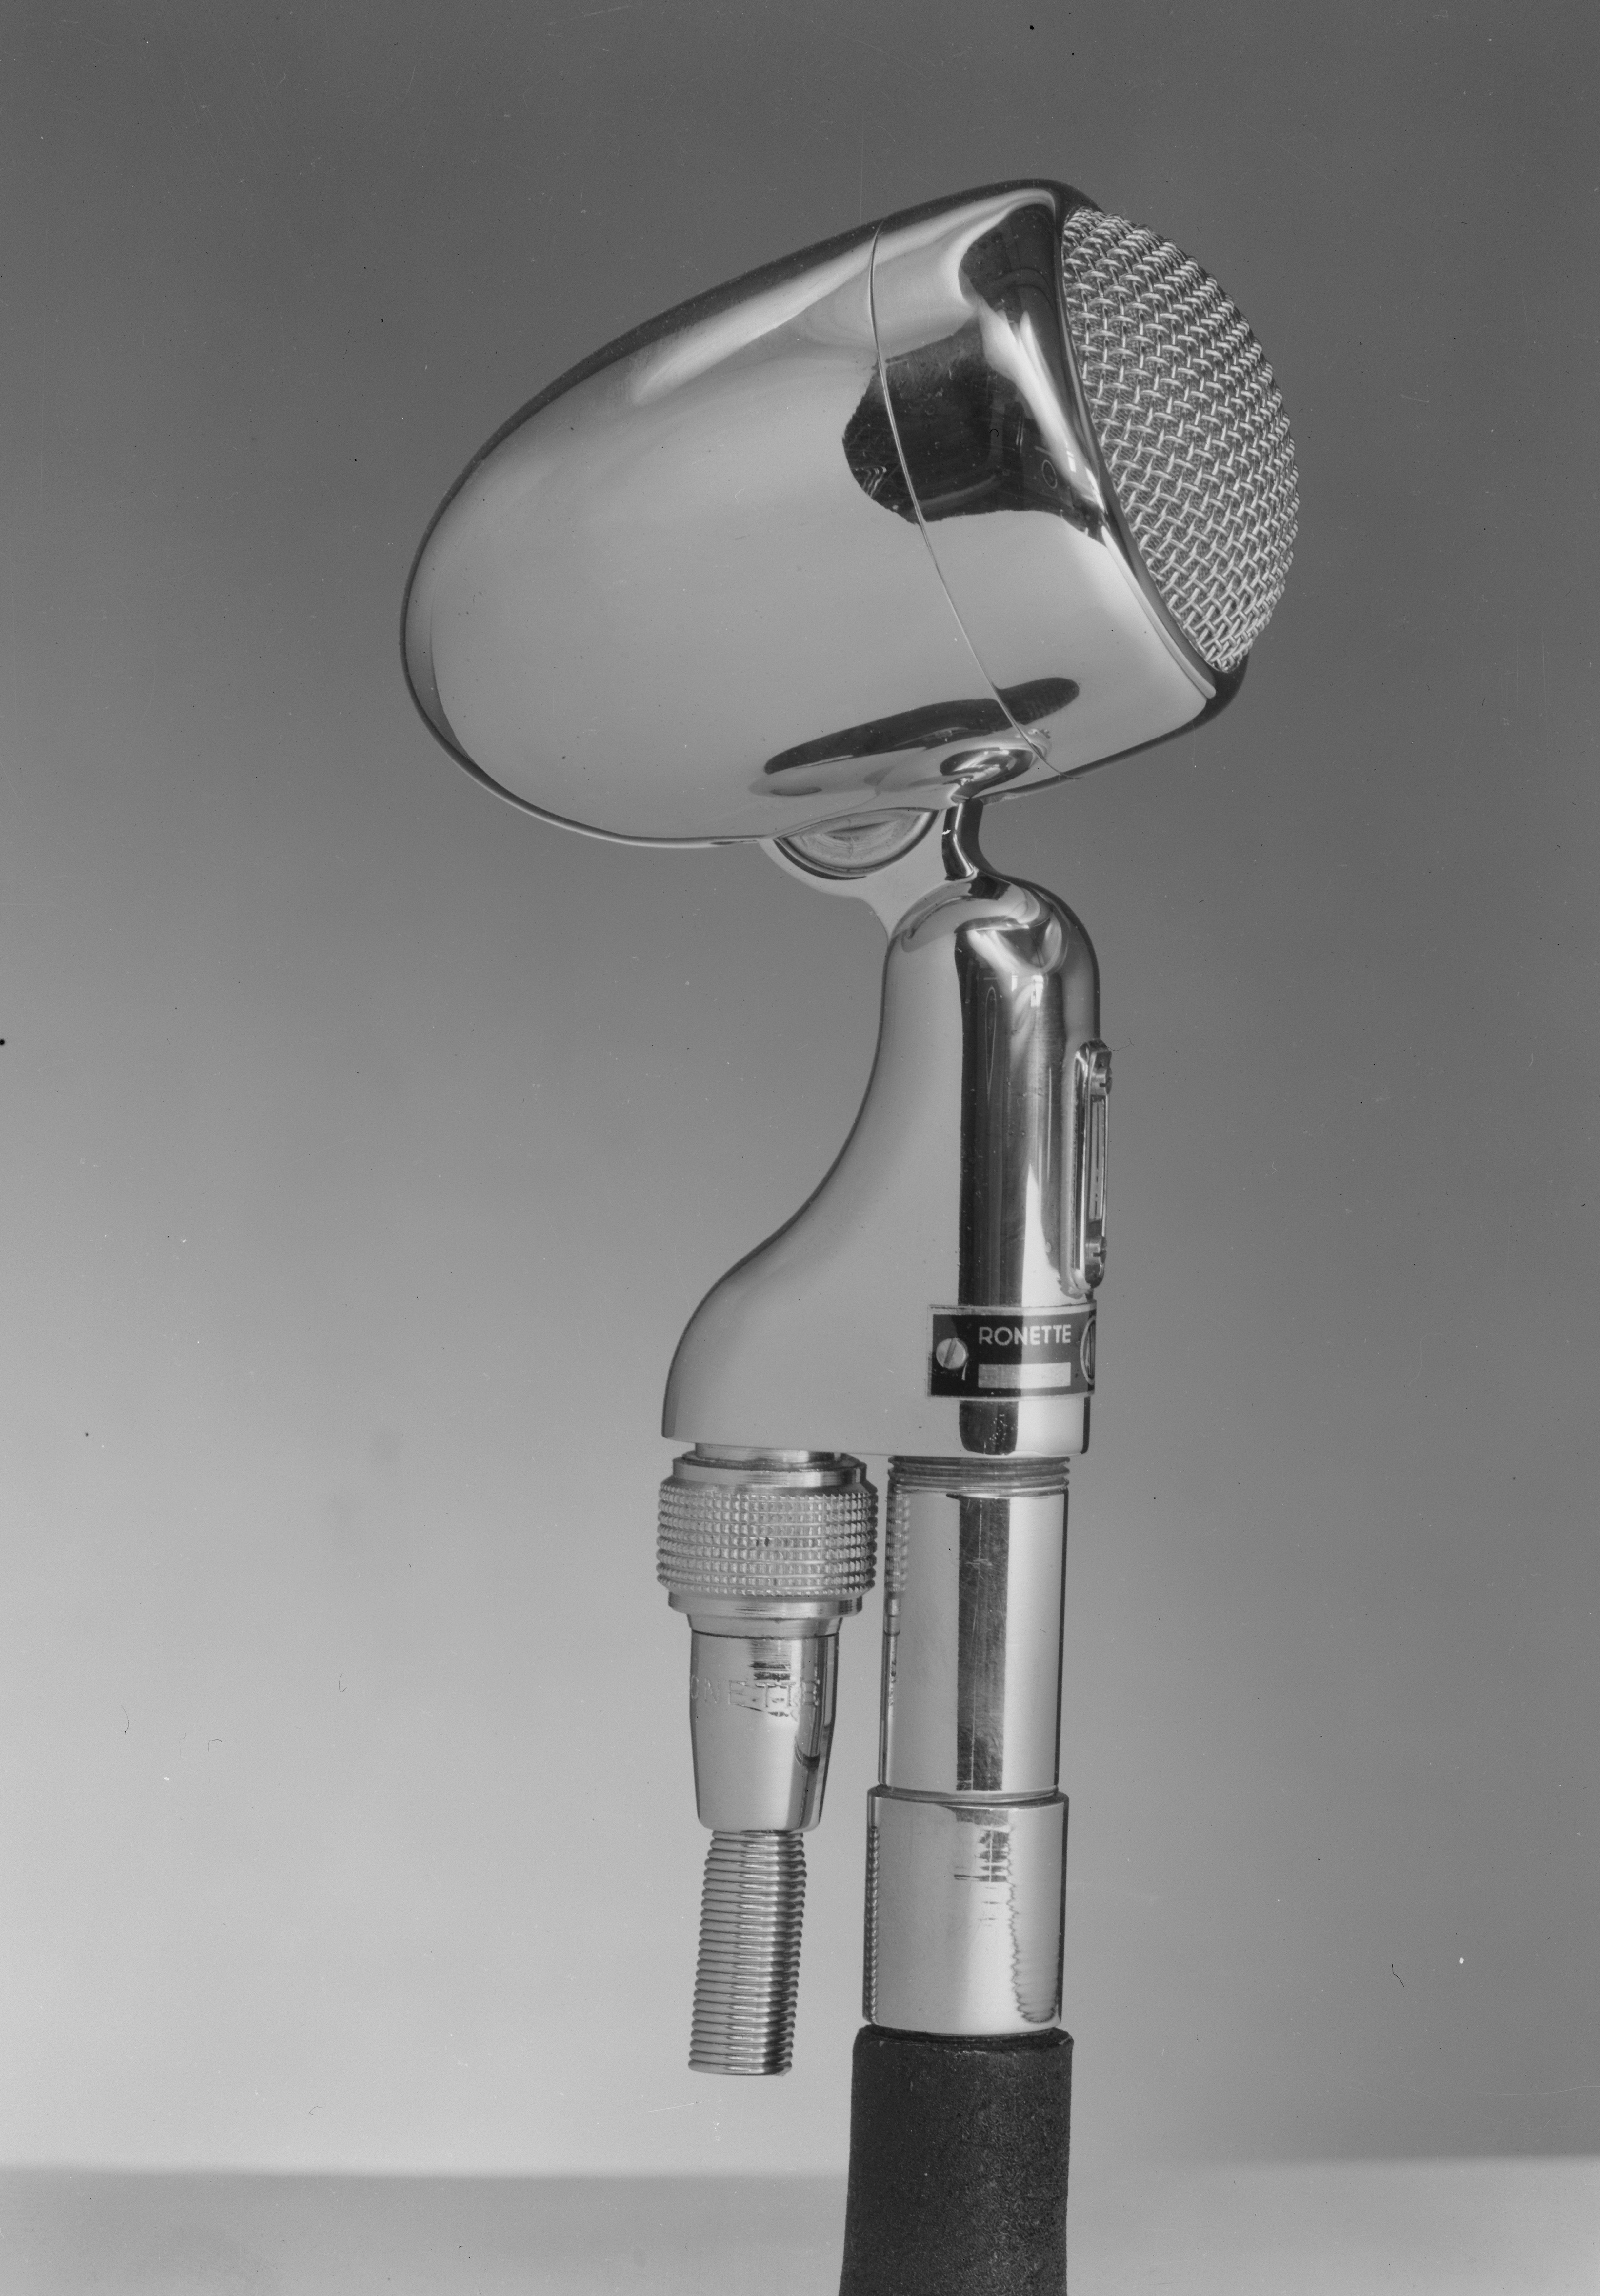 Ronette GS210 microphone, March 1953, by Max Dupain